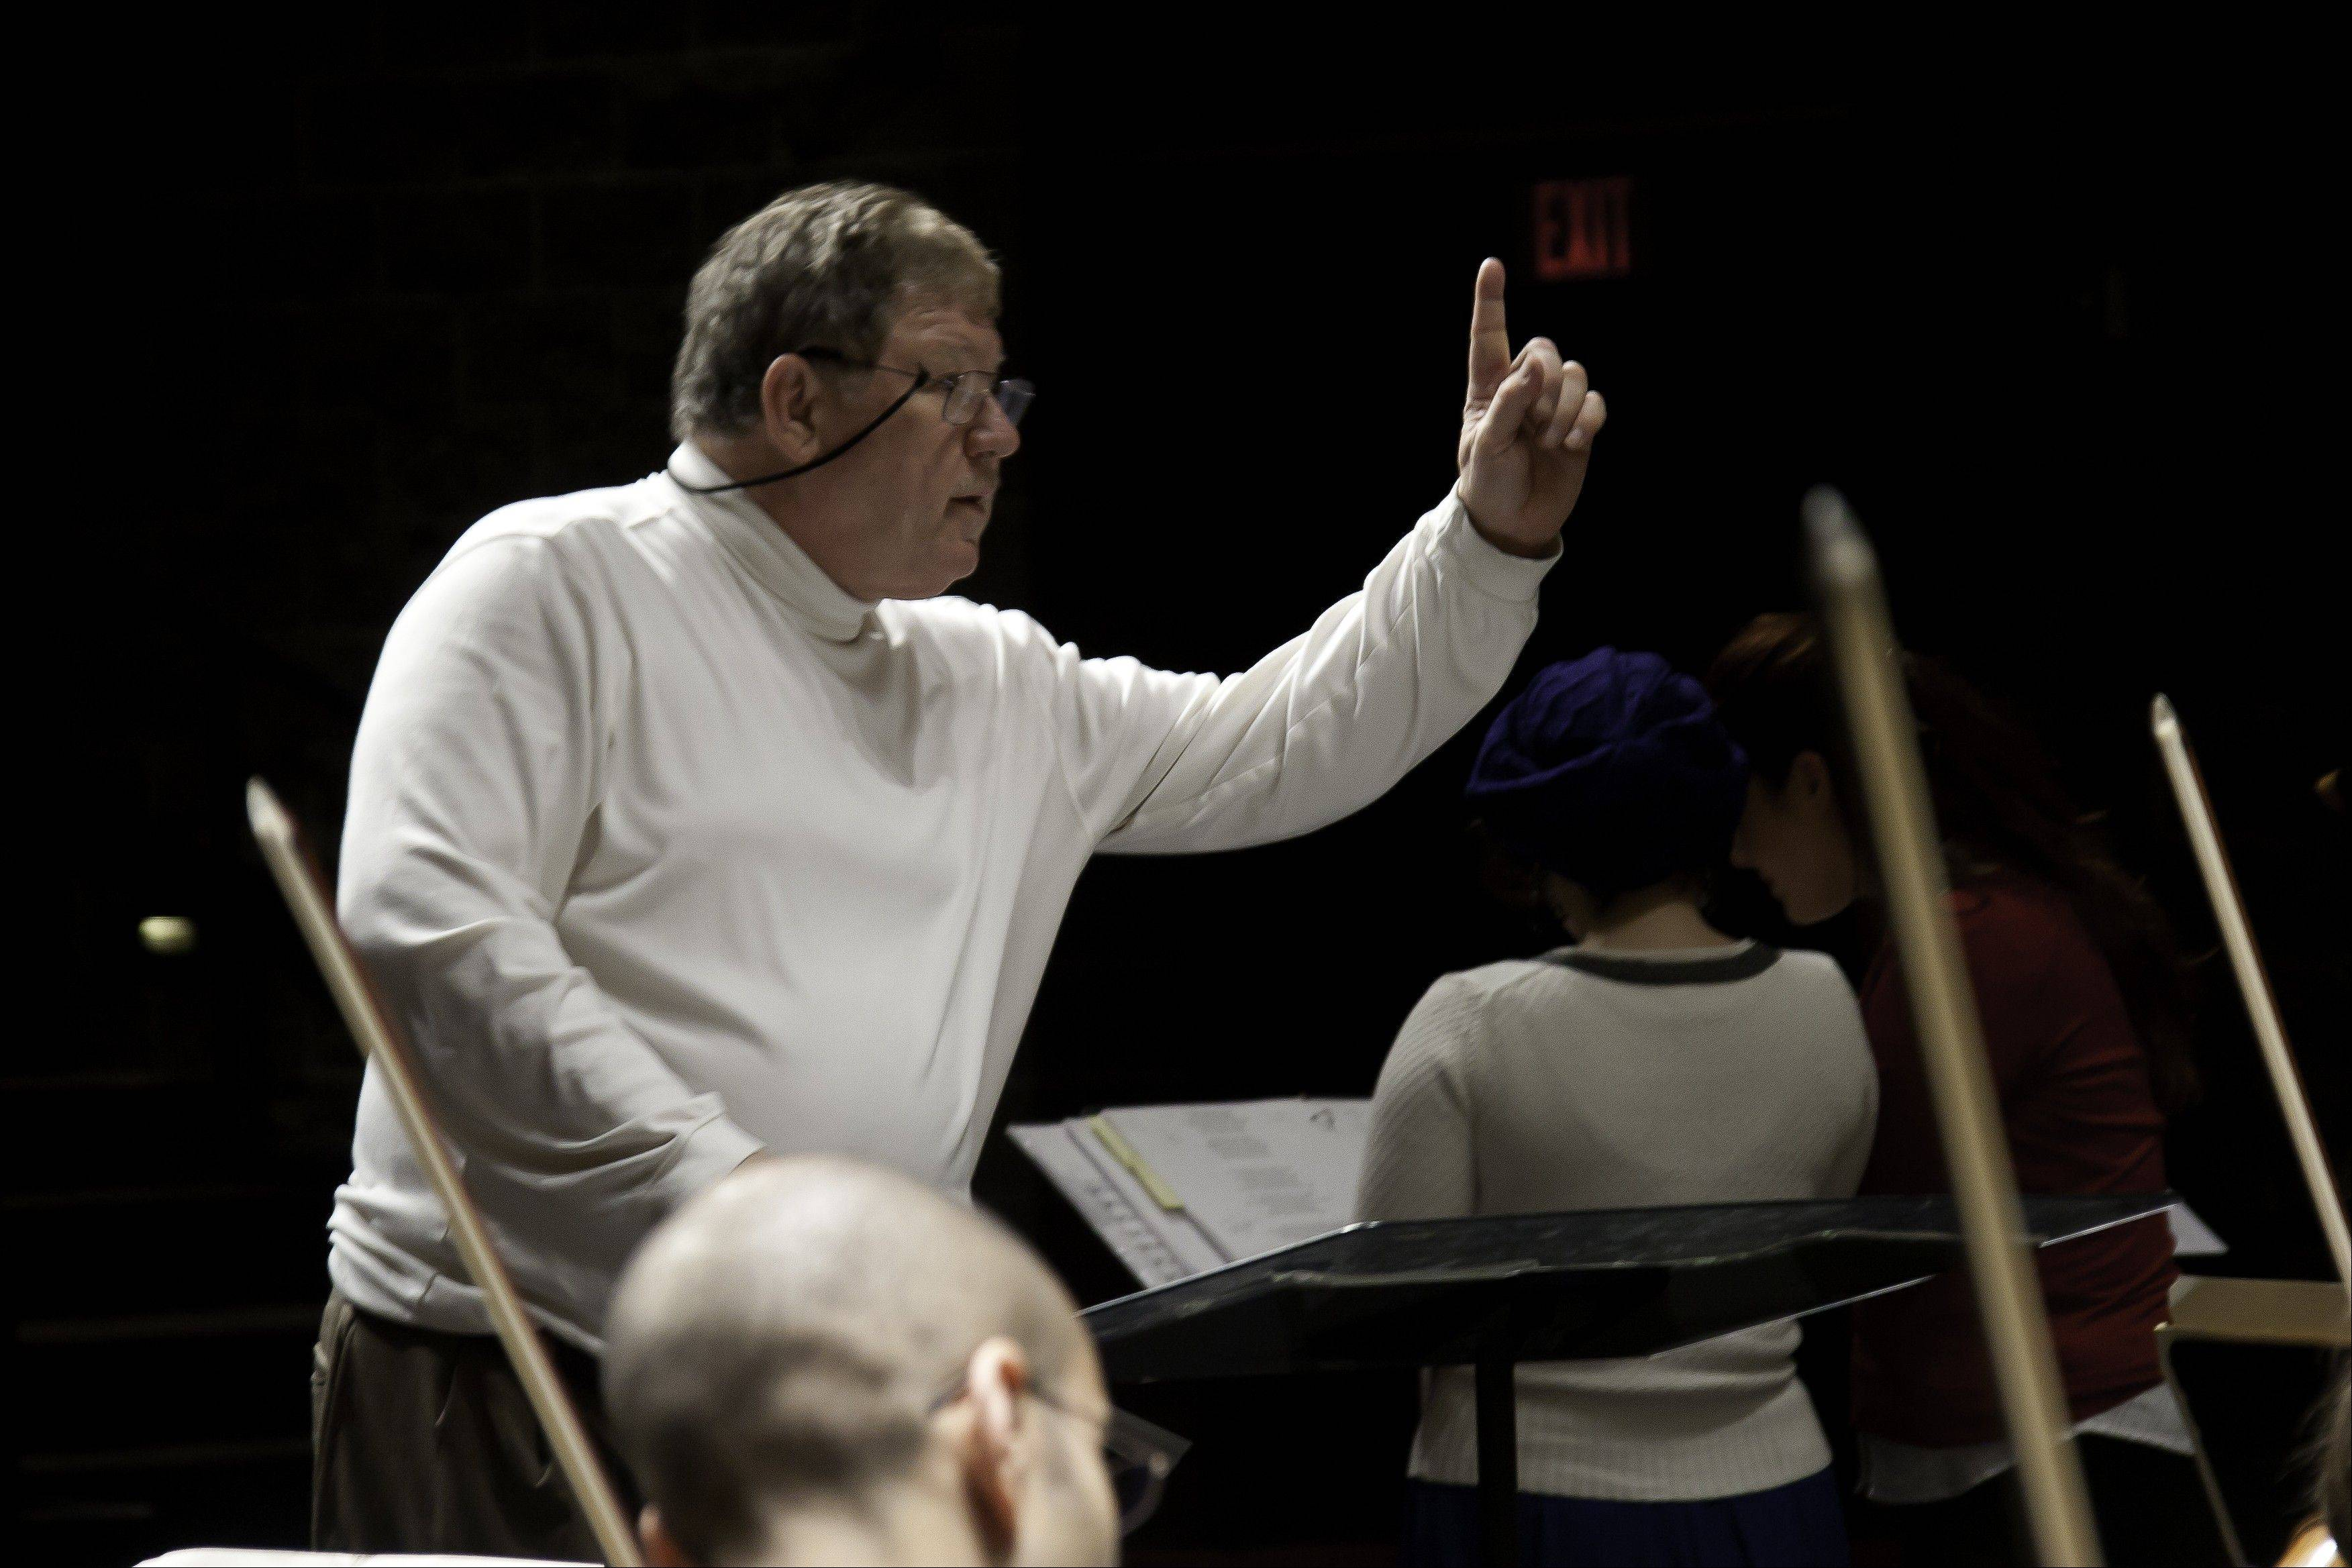 Dr. Verne Schwager conducts the Northwest Festival Orchestra in a rehearsal for the 2010 holiday concert.